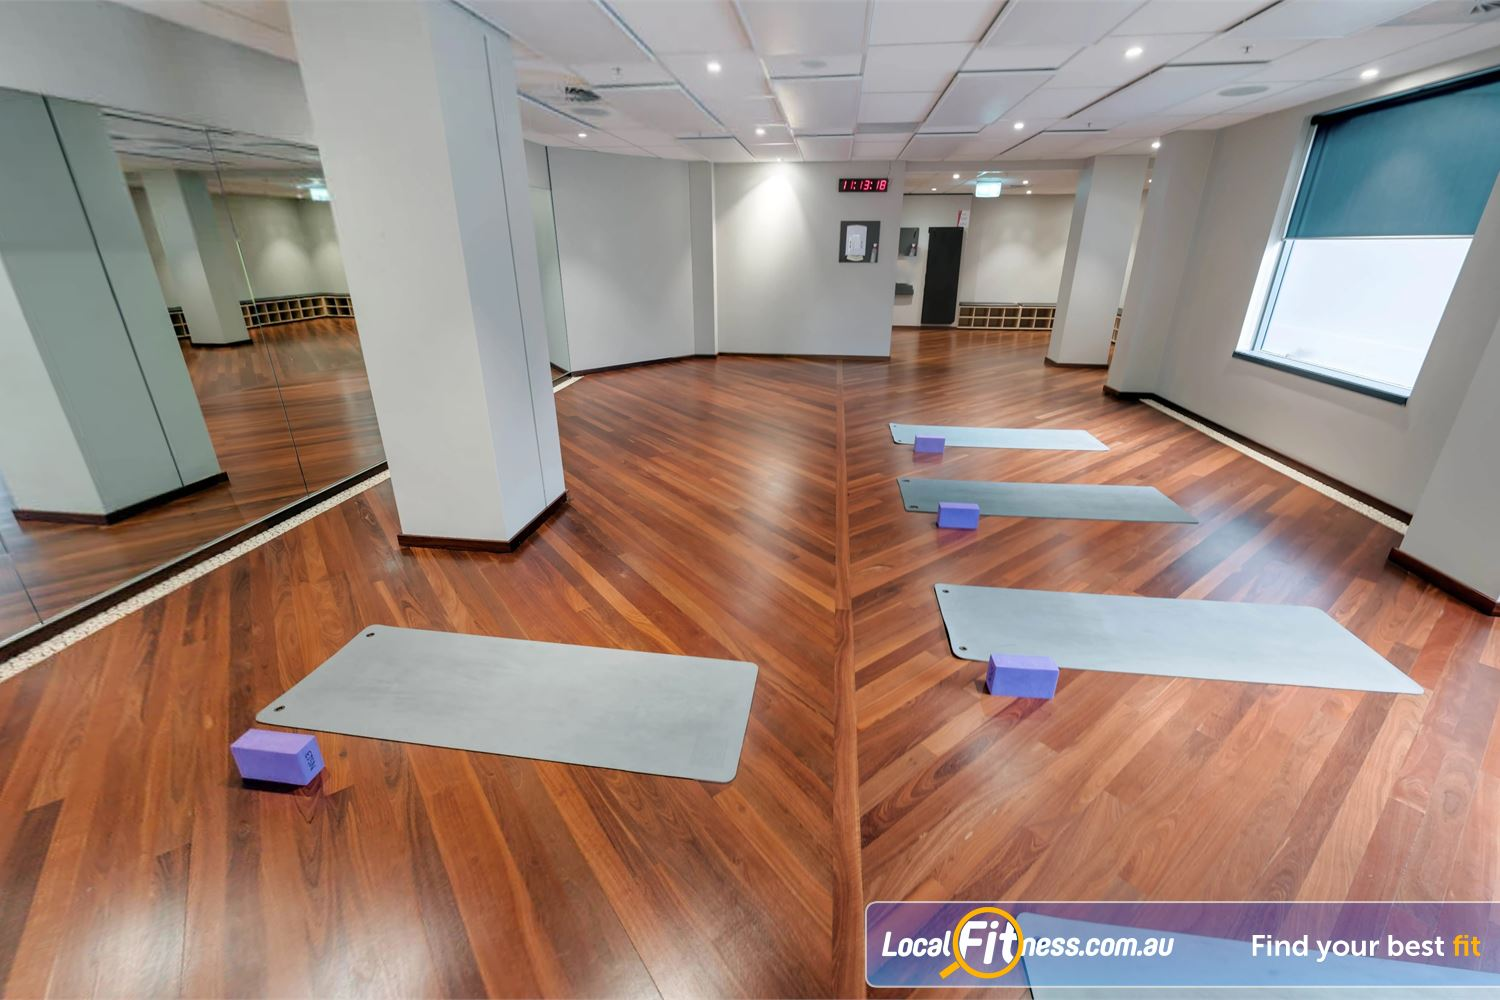 Fitness First Elizabeth Plaza North Sydney Mind body classes inc. Yoga and North Sydney Pilates and more.